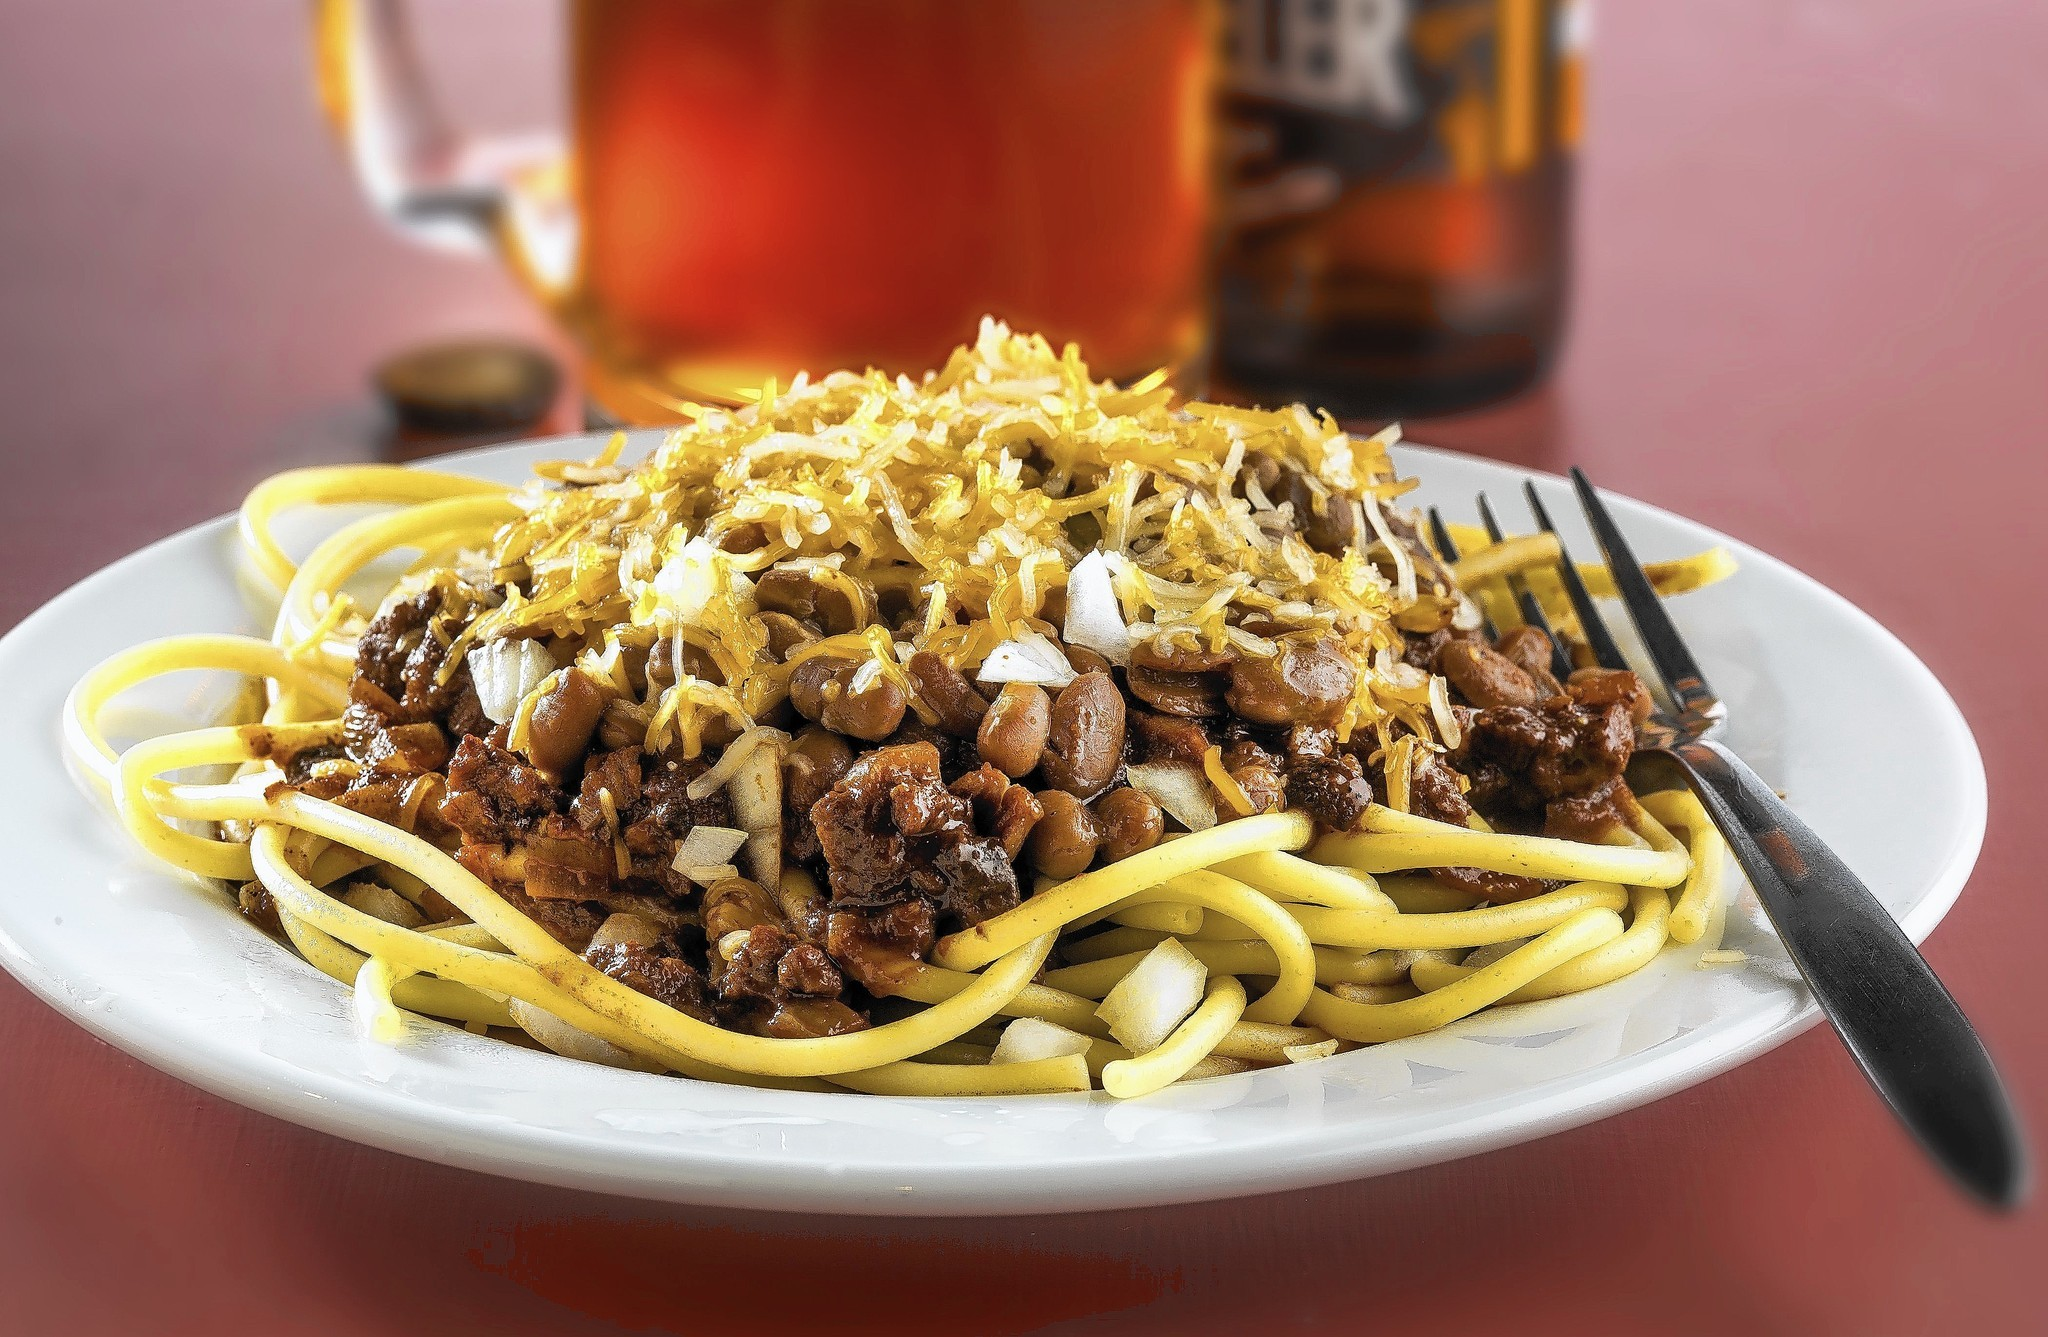 Vegan or not, Cincy chili is all about spices